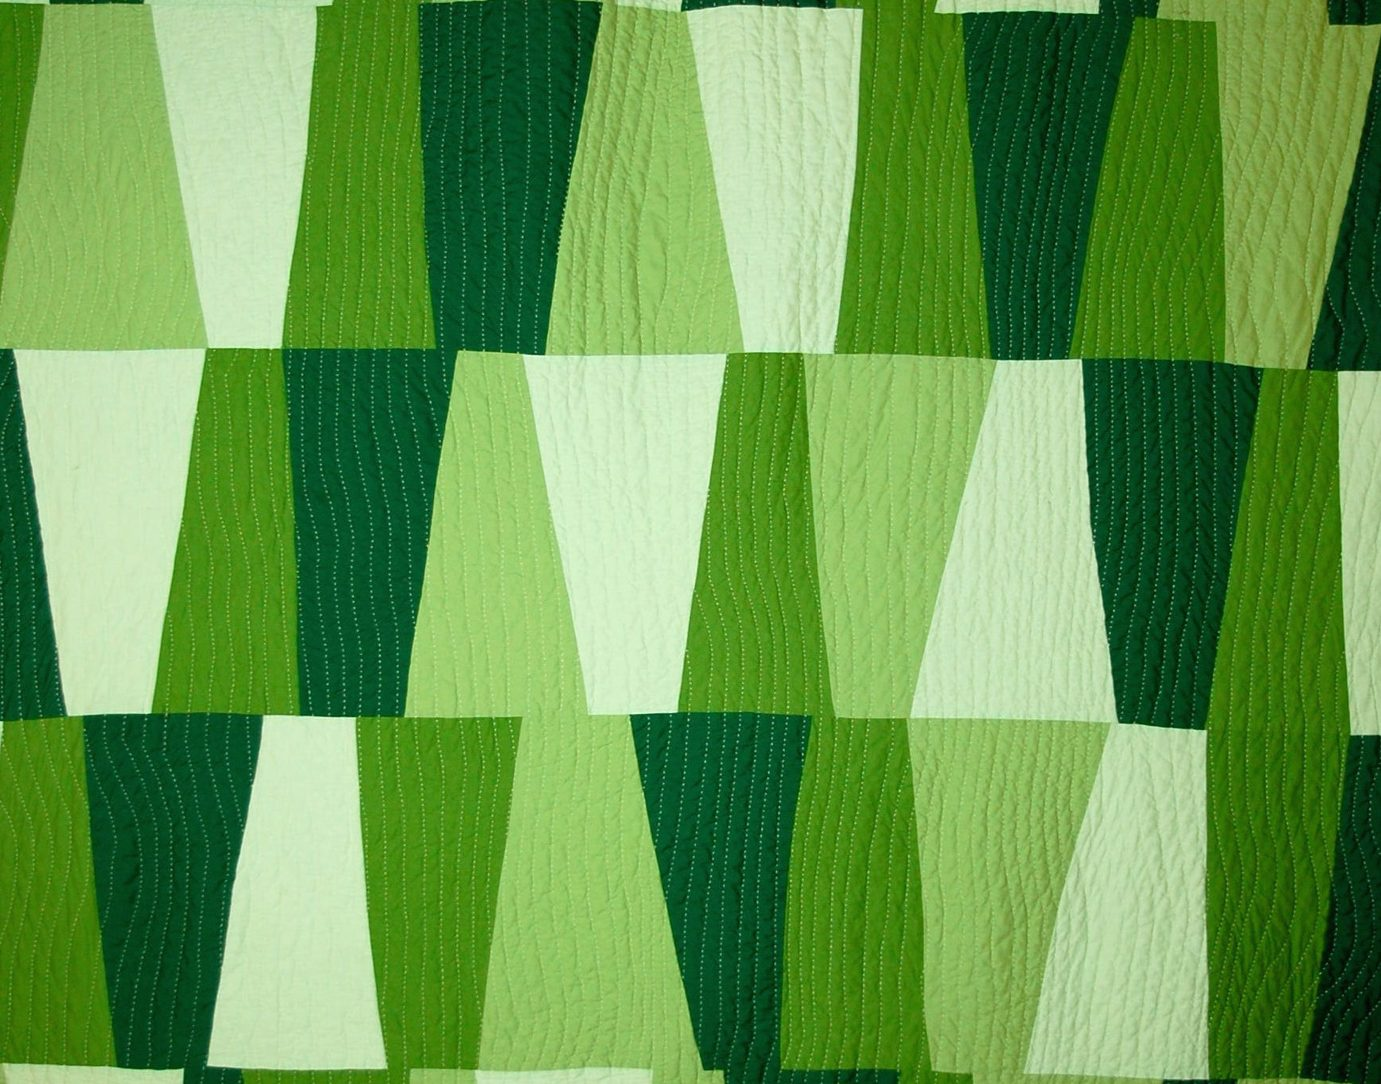 A geometric patterend quilt by Cathy Fussell